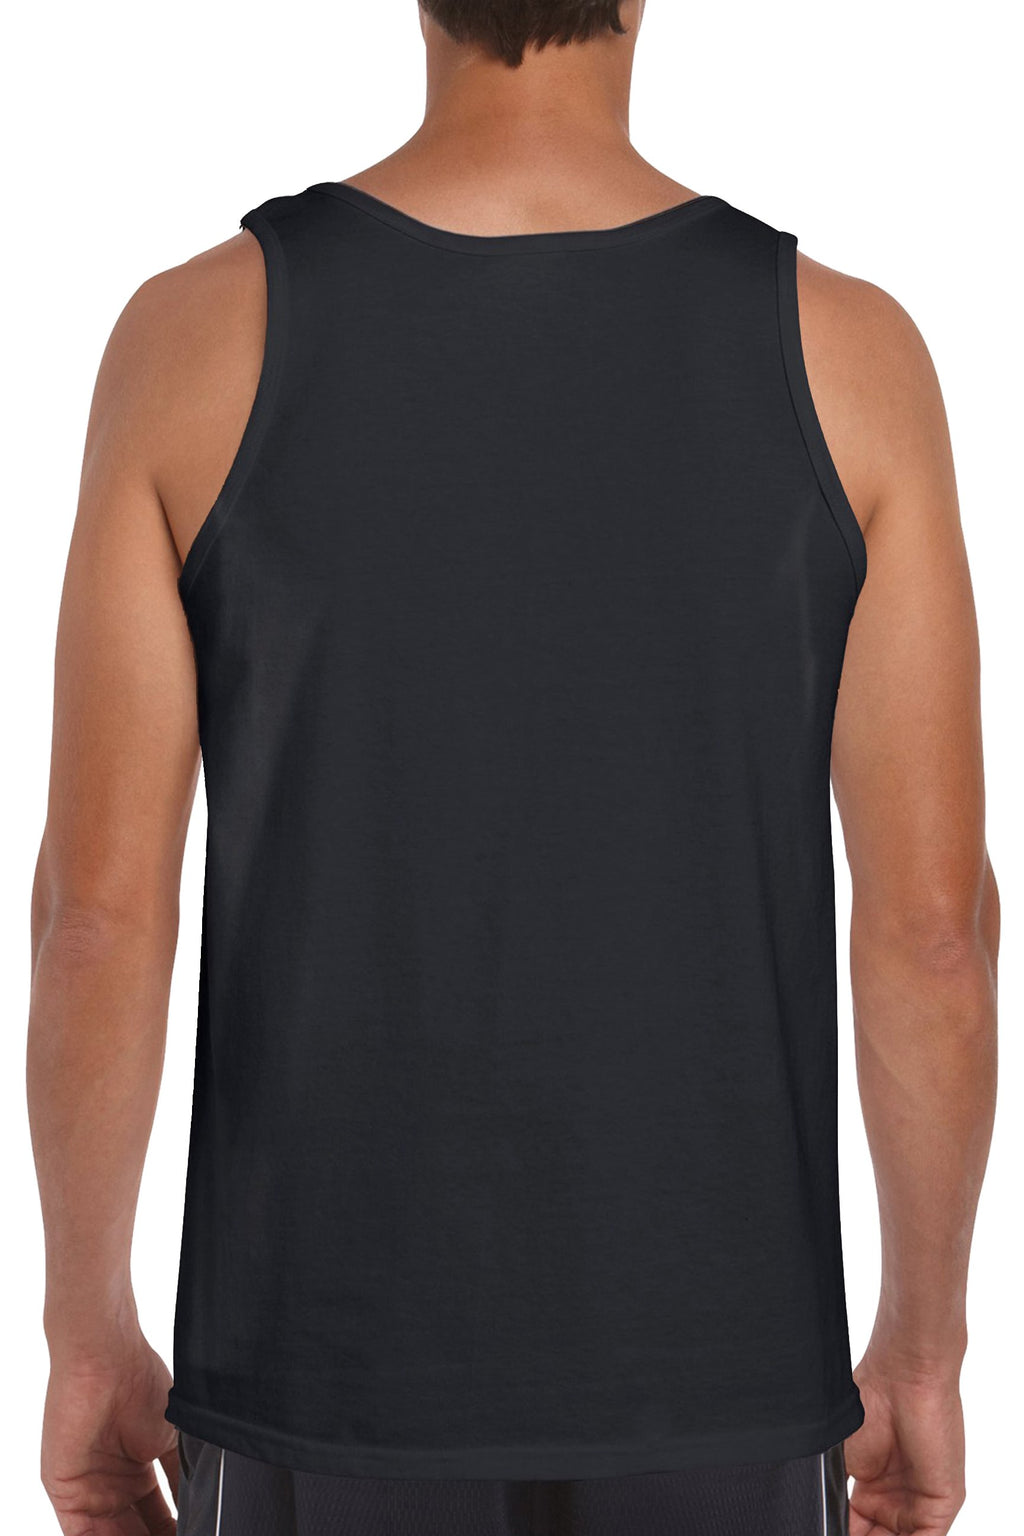 Men's Eat Sleep Lift Repeat Tank Top Shirt